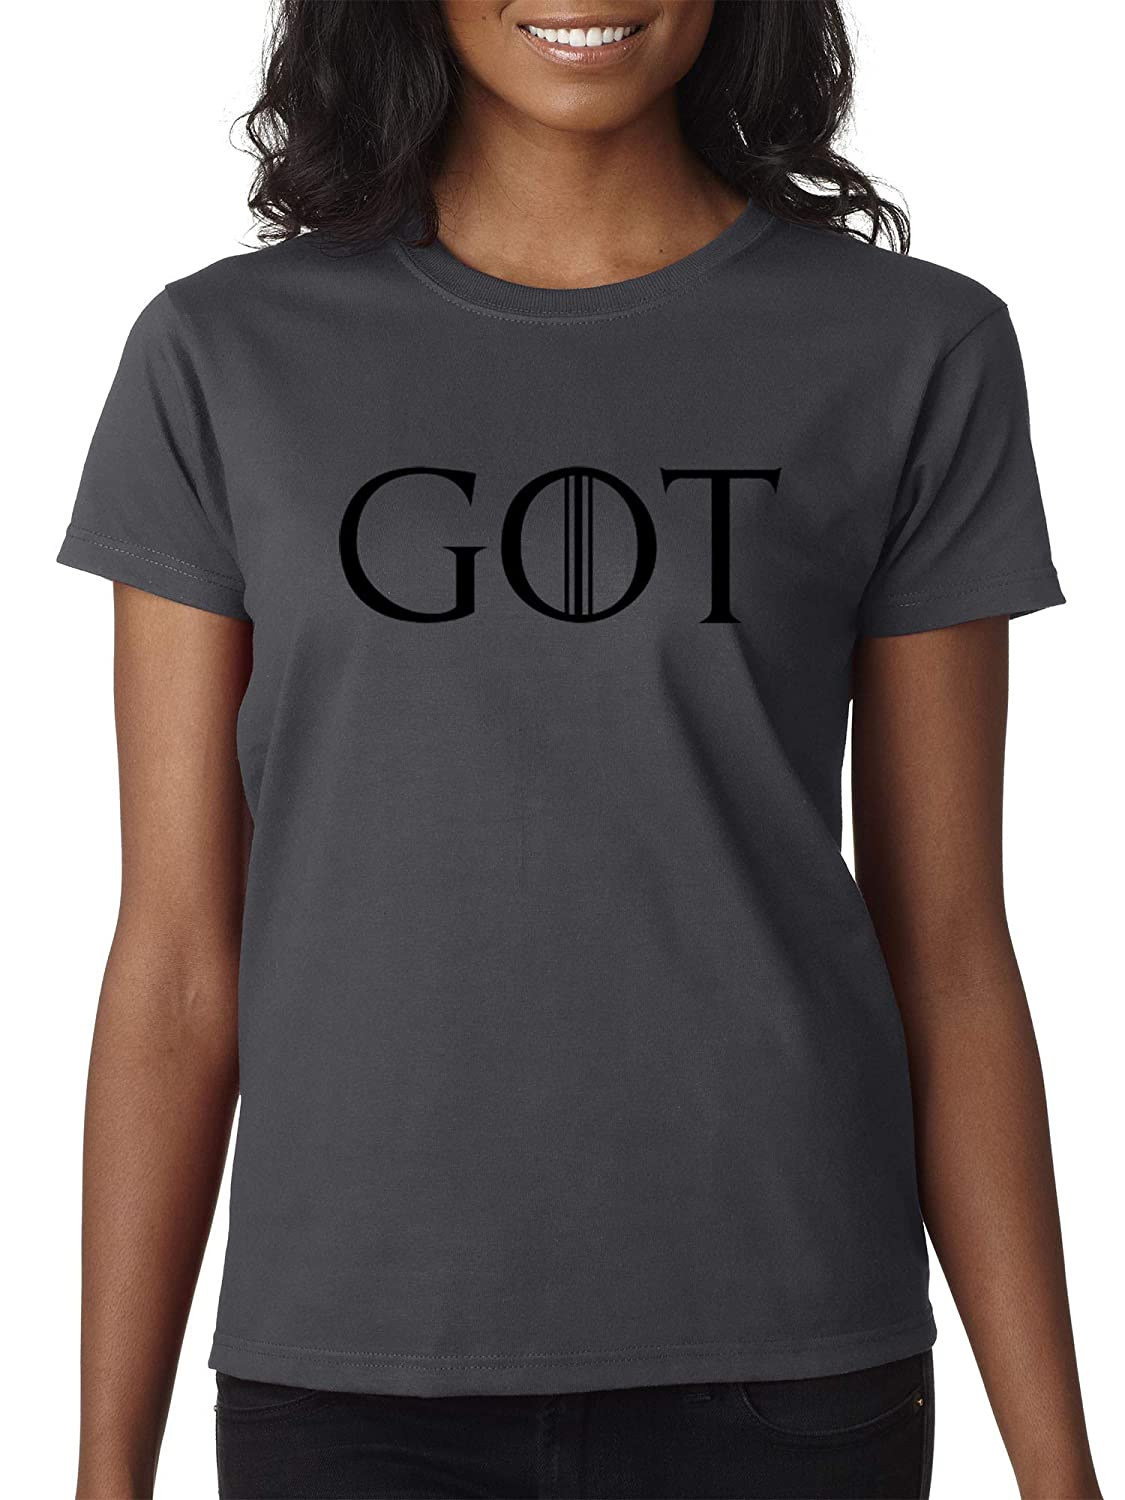 Charcoal Trendy USA 1215  Women's TShirt GOT Game of Thrones TV Show Series